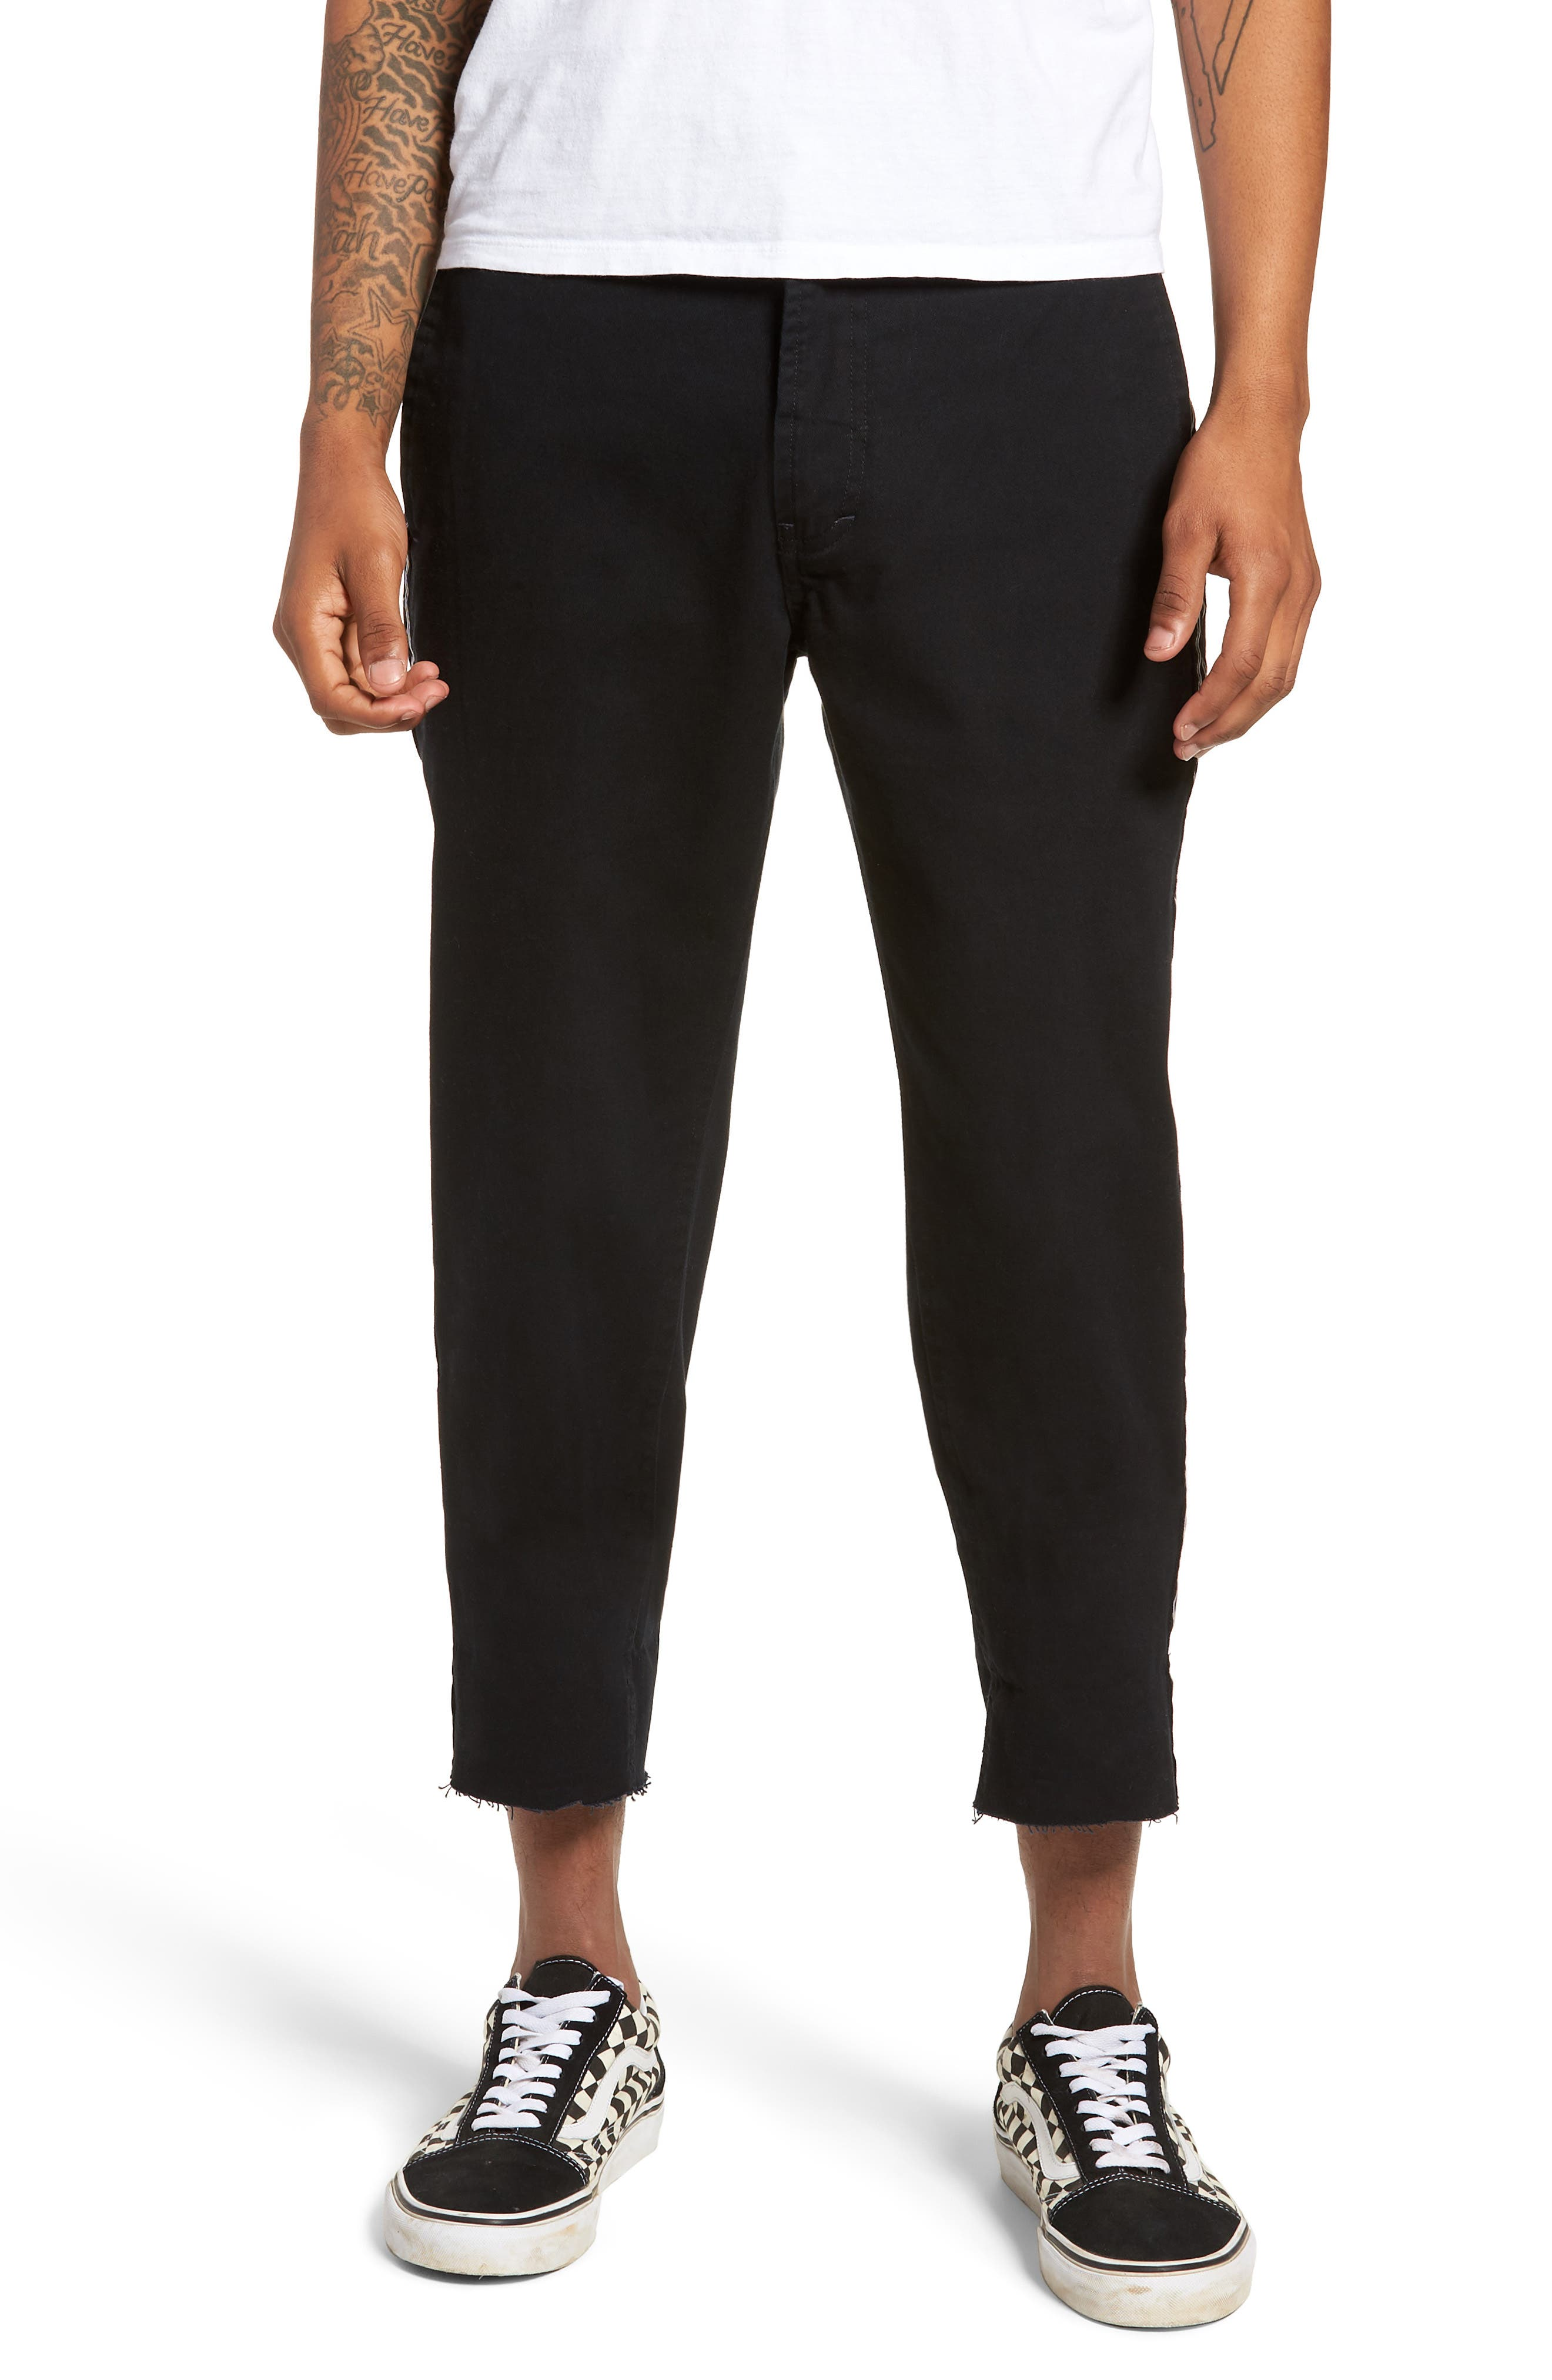 B. Relaxed Chinos,                         Main,                         color, Taped Black Crop